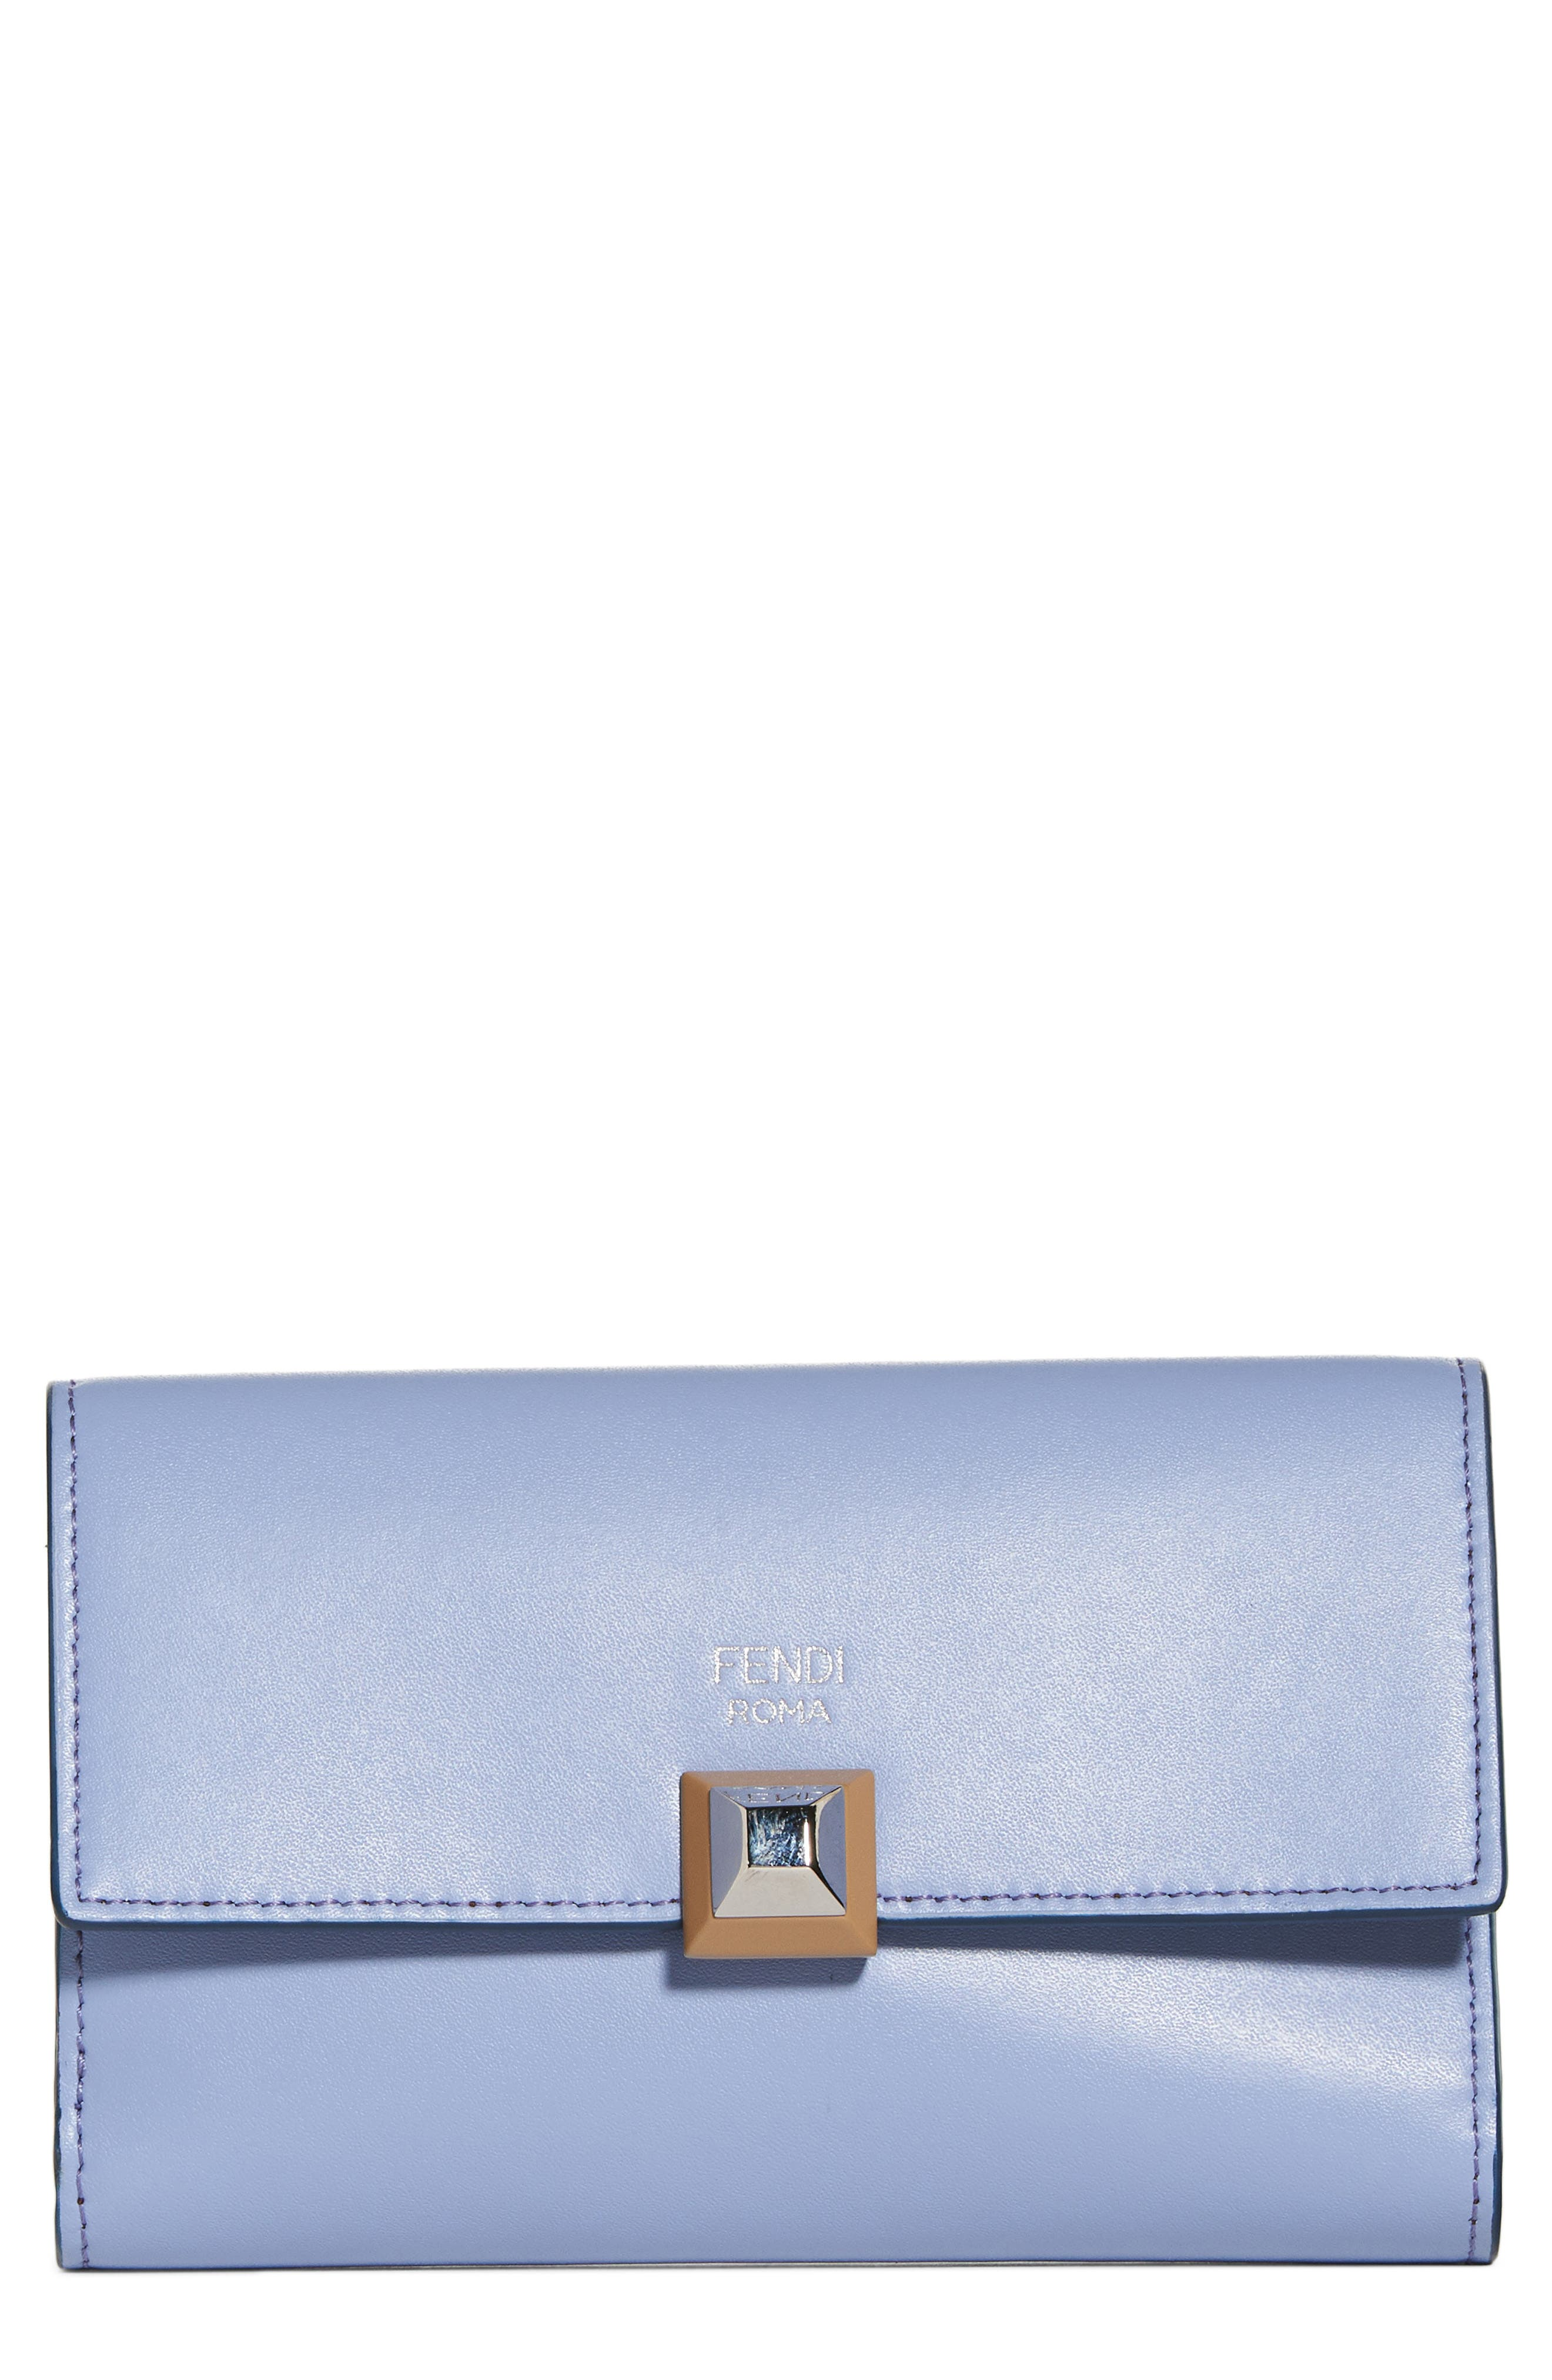 Medium Leather Wallet,                         Main,                         color, Sky